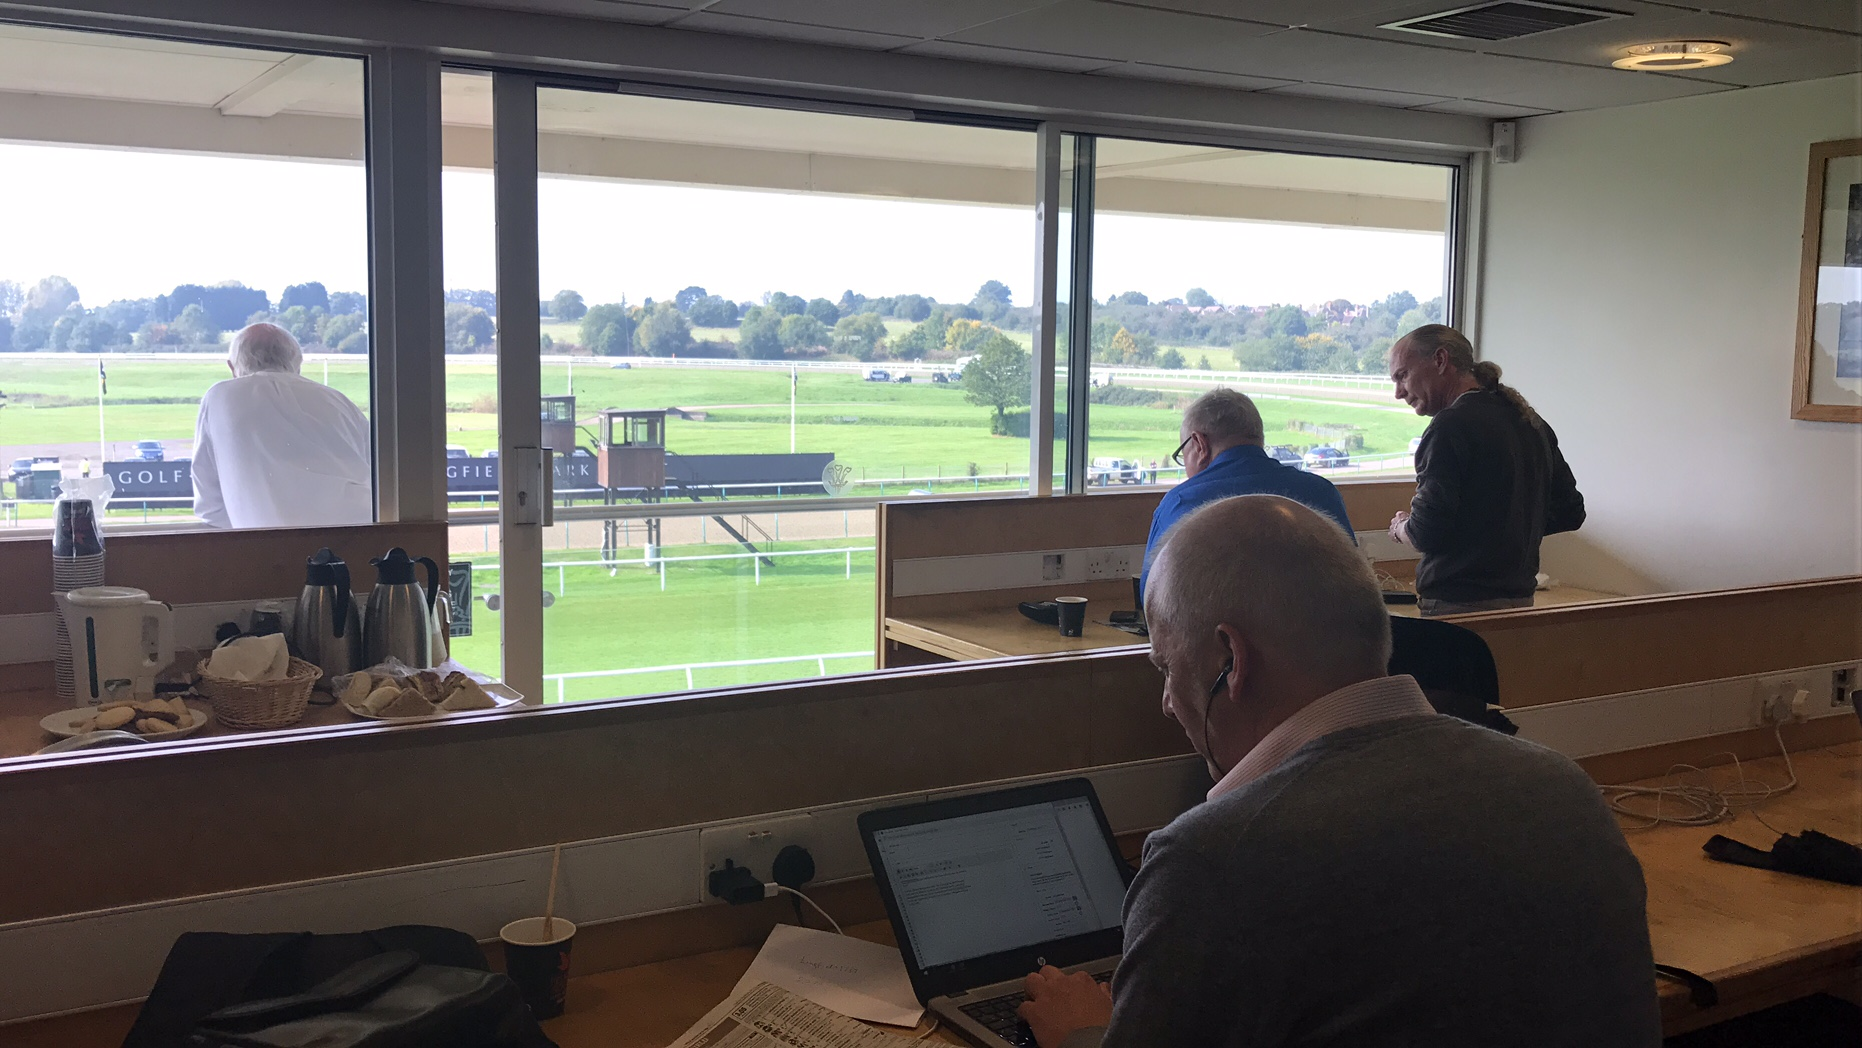 Inside the press box at Lingfield